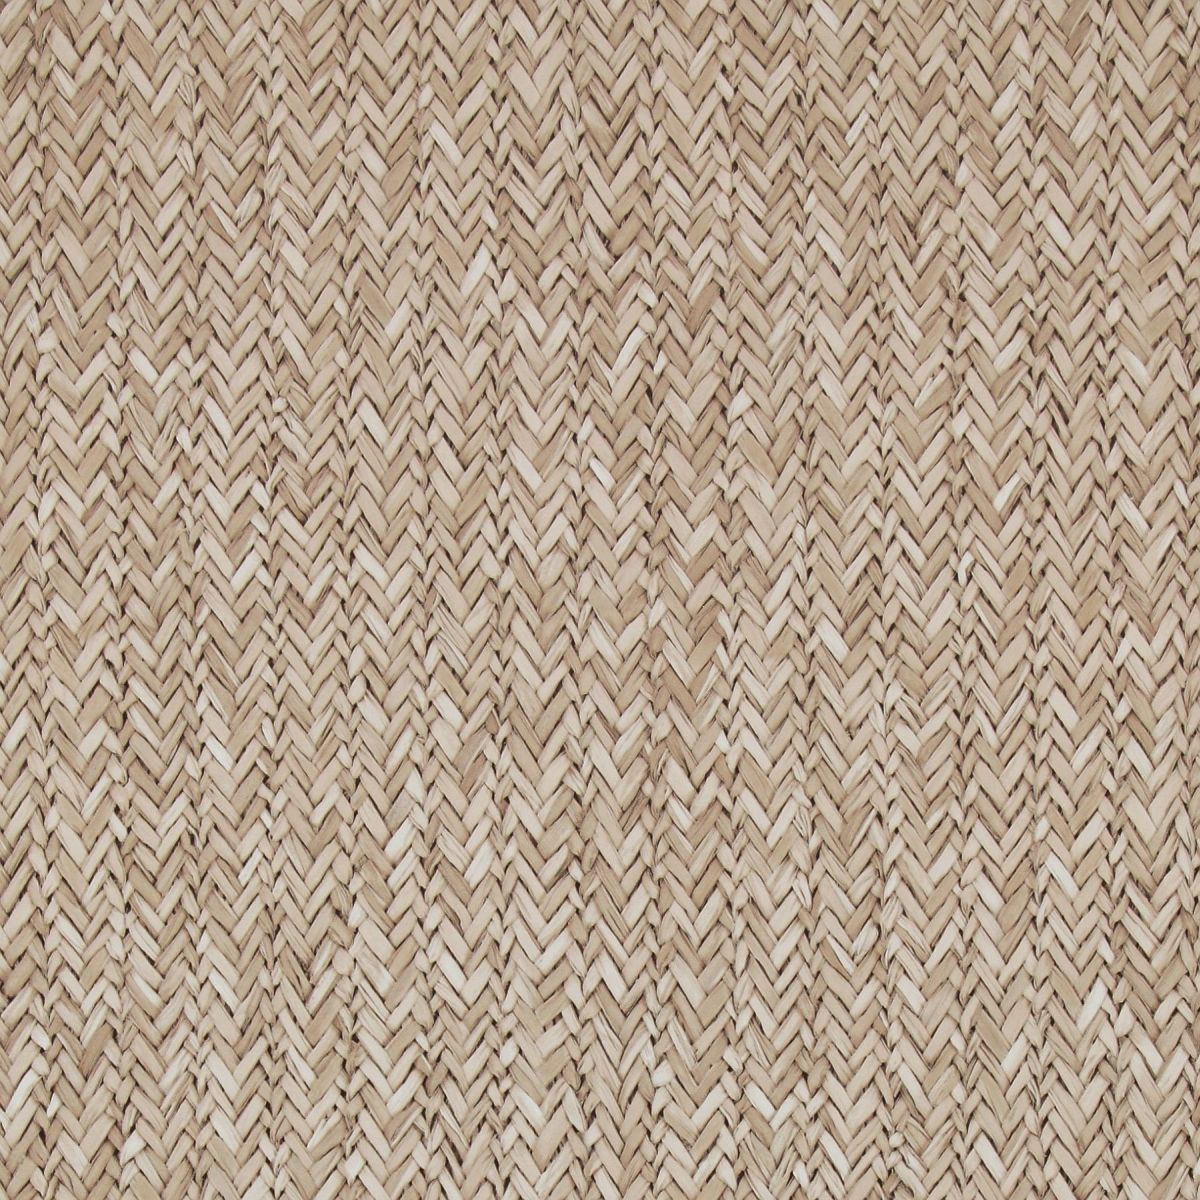 Bn Wallcoverings Non Woven Wallpaper Riviera Maison 18301